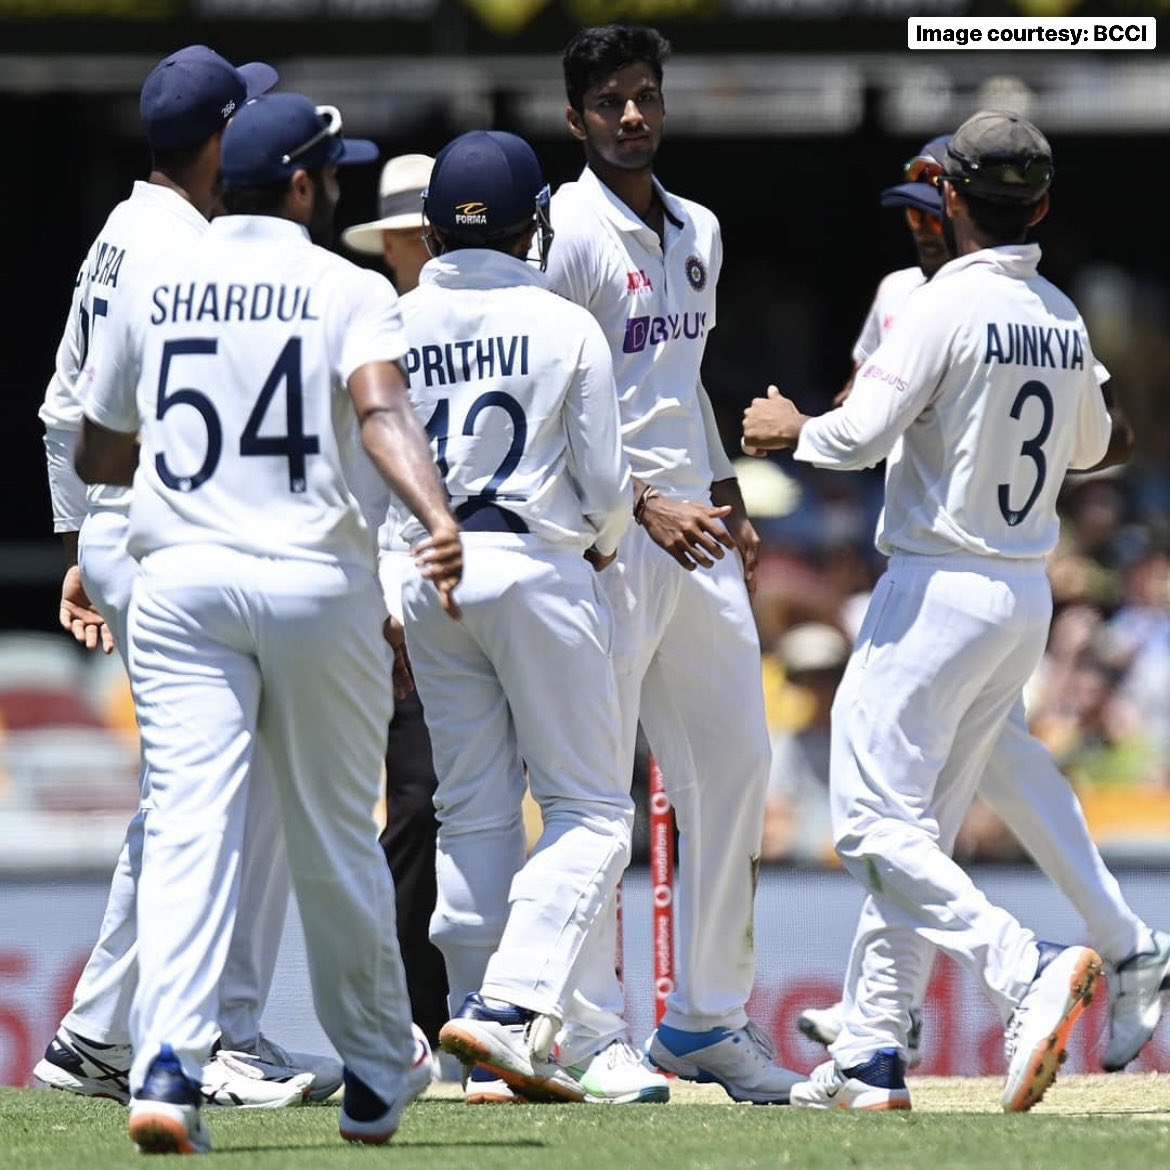 #TeamIndia's bowlers put on an impressive show to bowl out Australia in the first session early today👌  In response, India got to 62/2 before rain played spoilsport ☔️  #OneFamily #MumbaiIndians #AUSvIND @BCCI